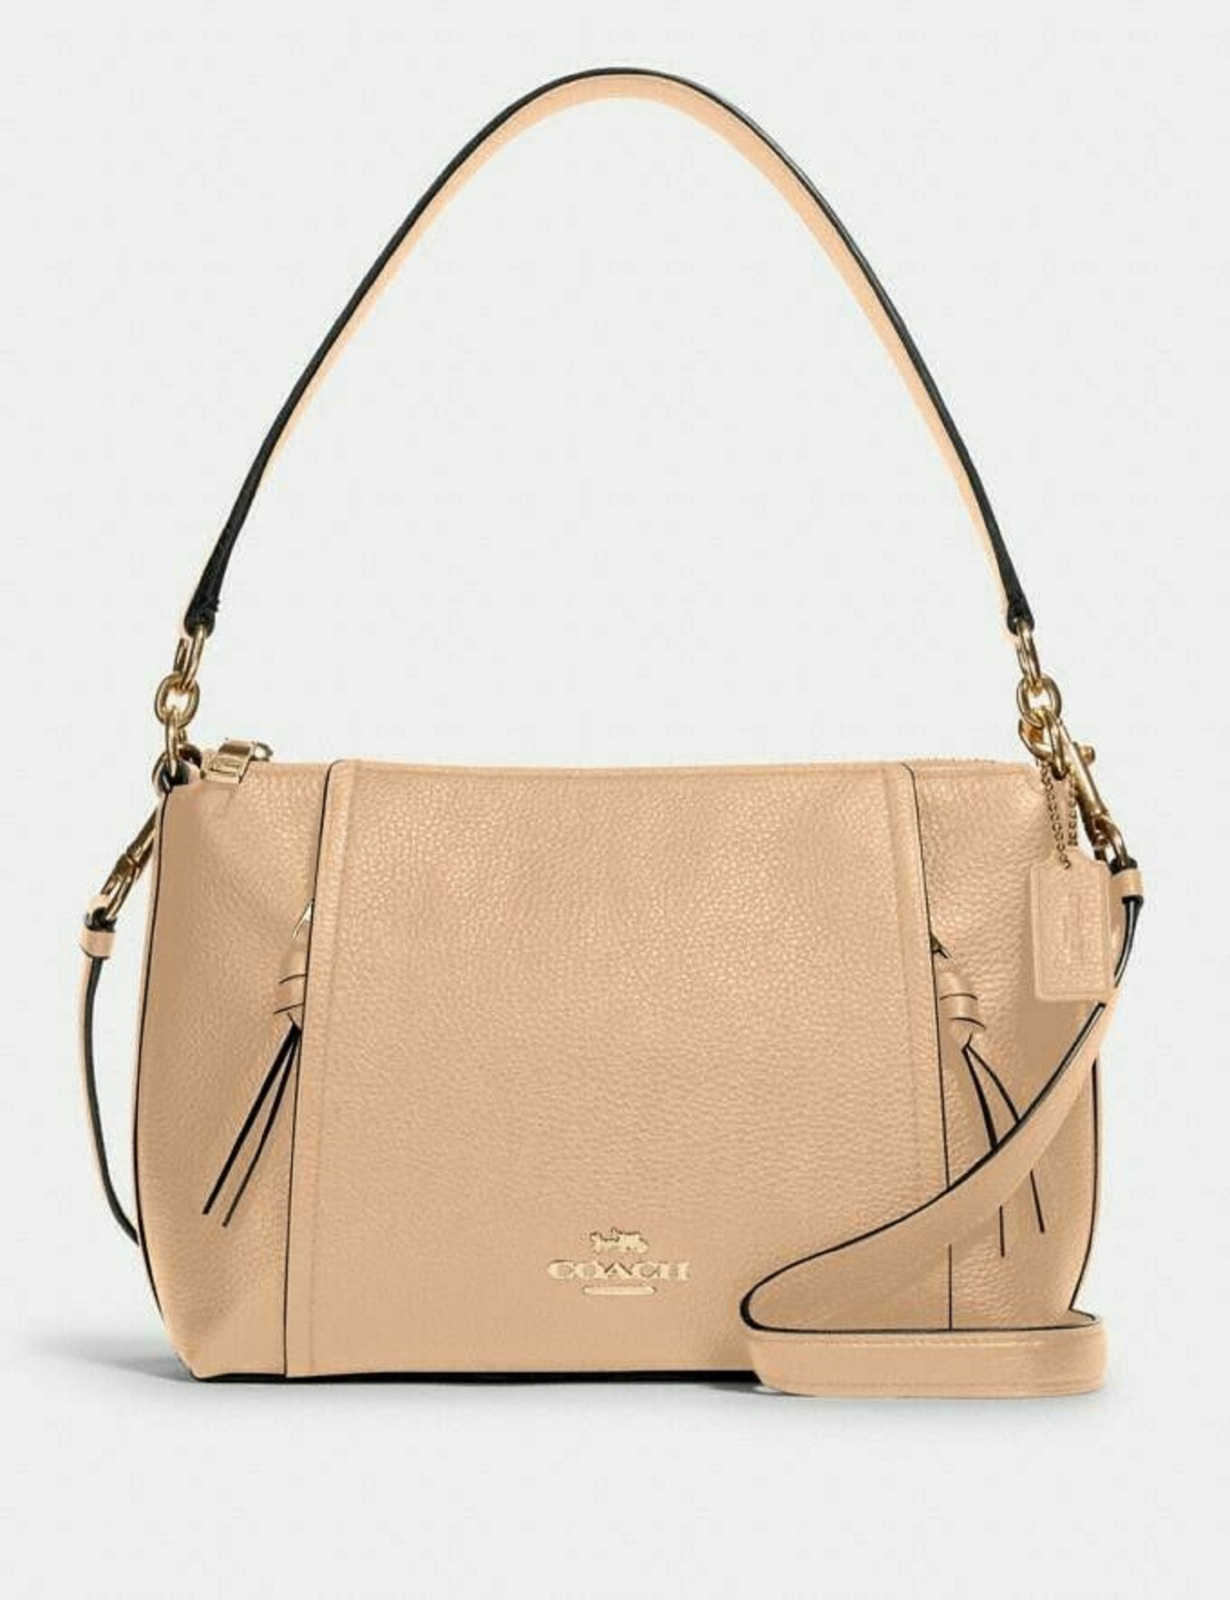 Primary image for Coach Im/Taupe Small Marlon Shoulder Bag / FREE SHIPPING